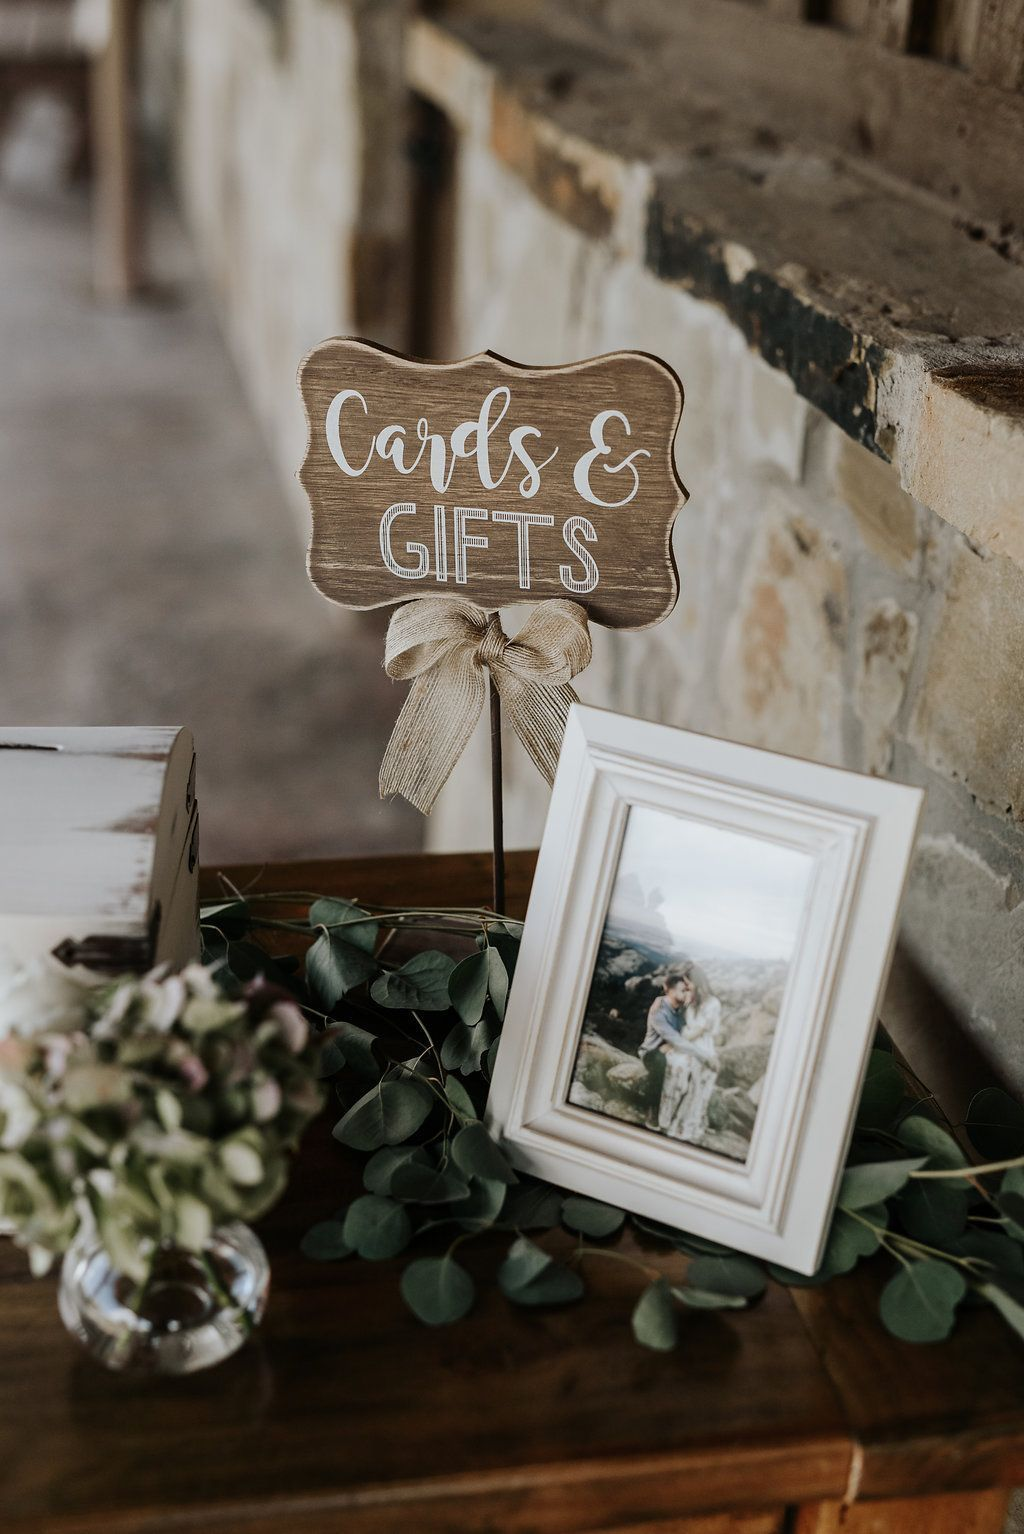 Modern Rustic Wedding Decor Wooden Cards Gifts Wedding Reception Sign Modern Rustic Gift Table Wedding Rustic Wedding Gift Table Wedding Welcome Table